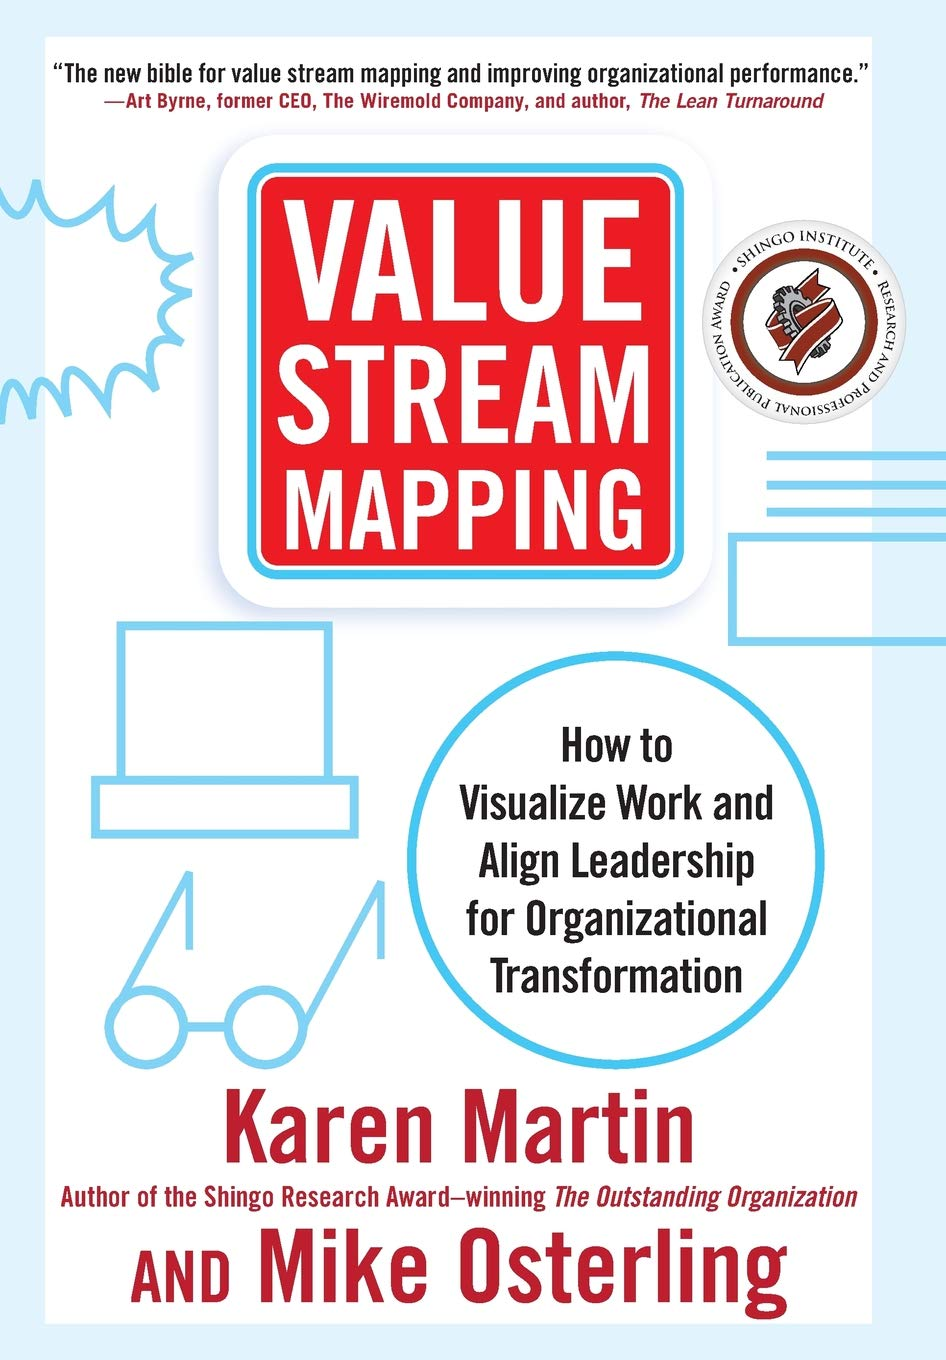 Kaizen Value Stream Mapping on 5s kaizen, continuous improvement kaizen, mini kaizen, value stream process improvement, lean kaizen, process improvement kaizen, muri kaizen, toyota production system kaizen, 6s kaizen,